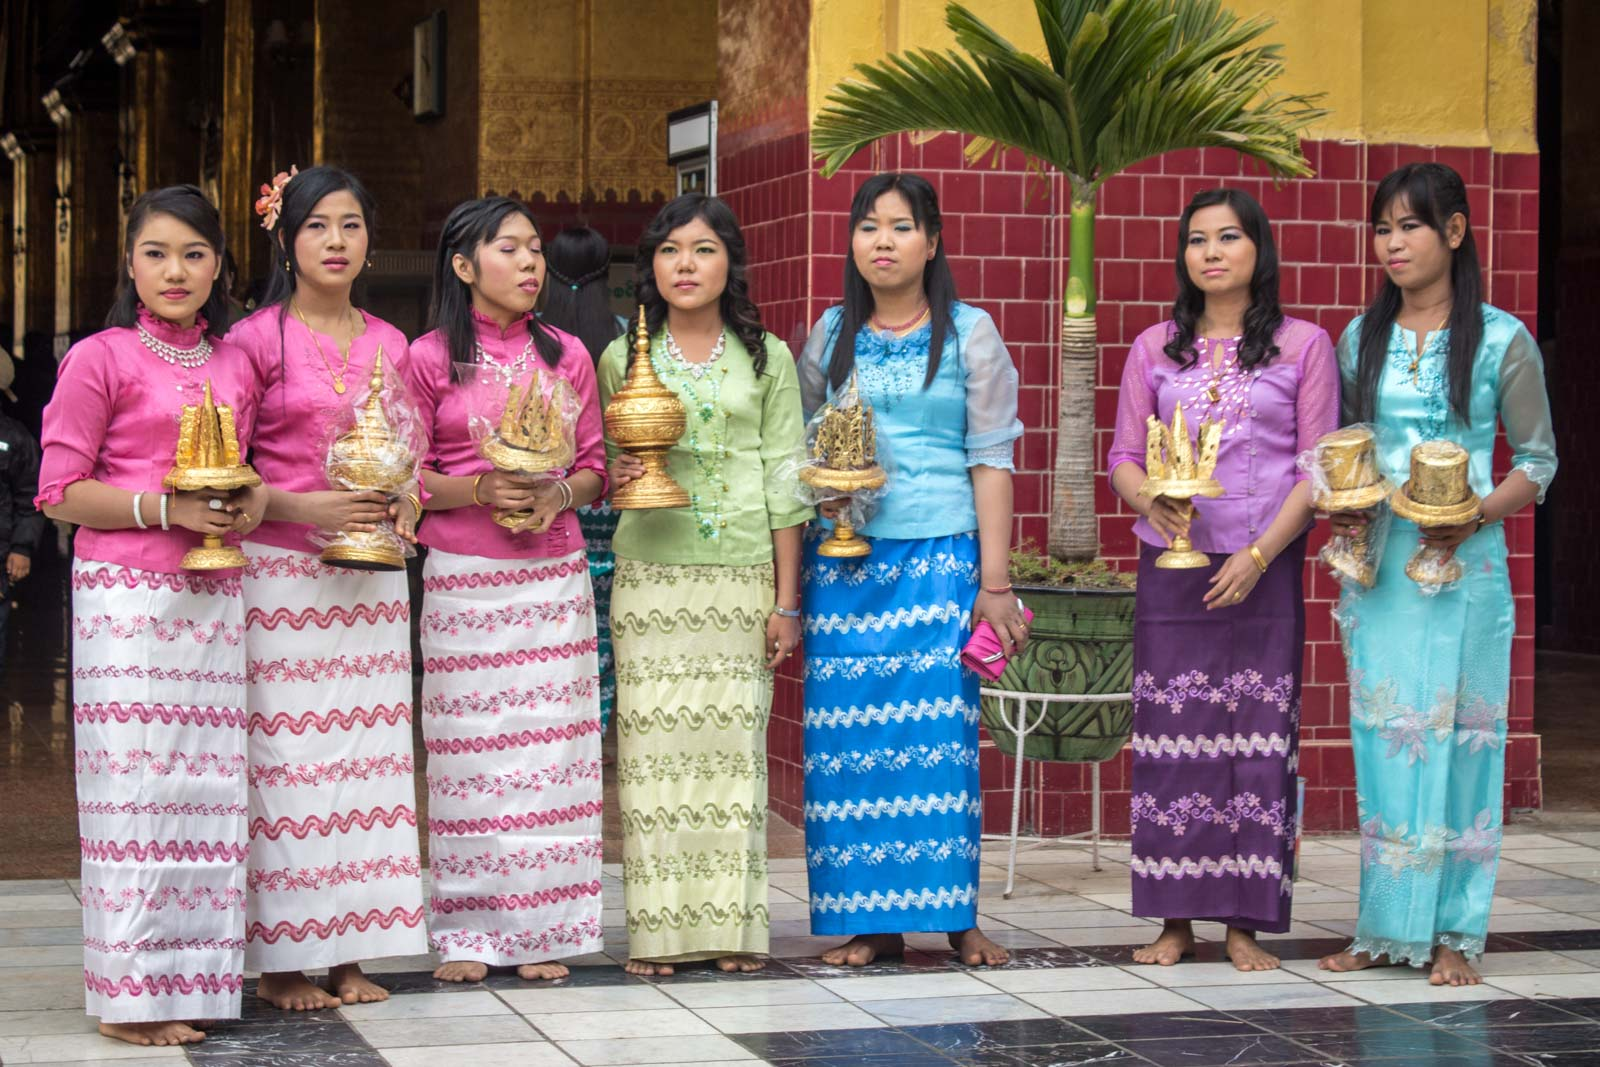 Ways to experience the local Myanmar culture